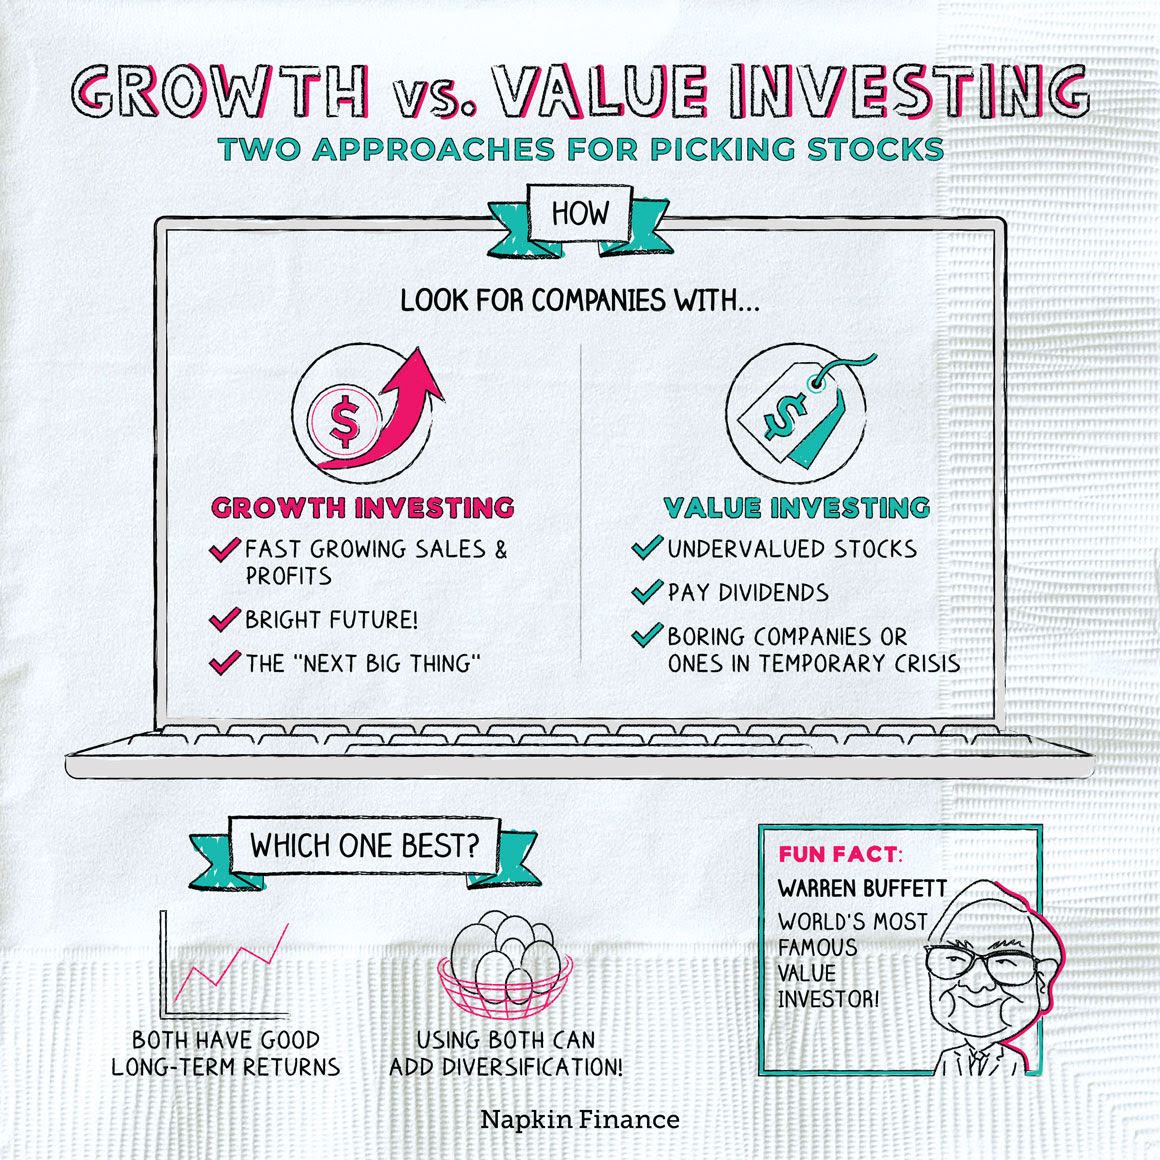 Growth vs. Value Investing